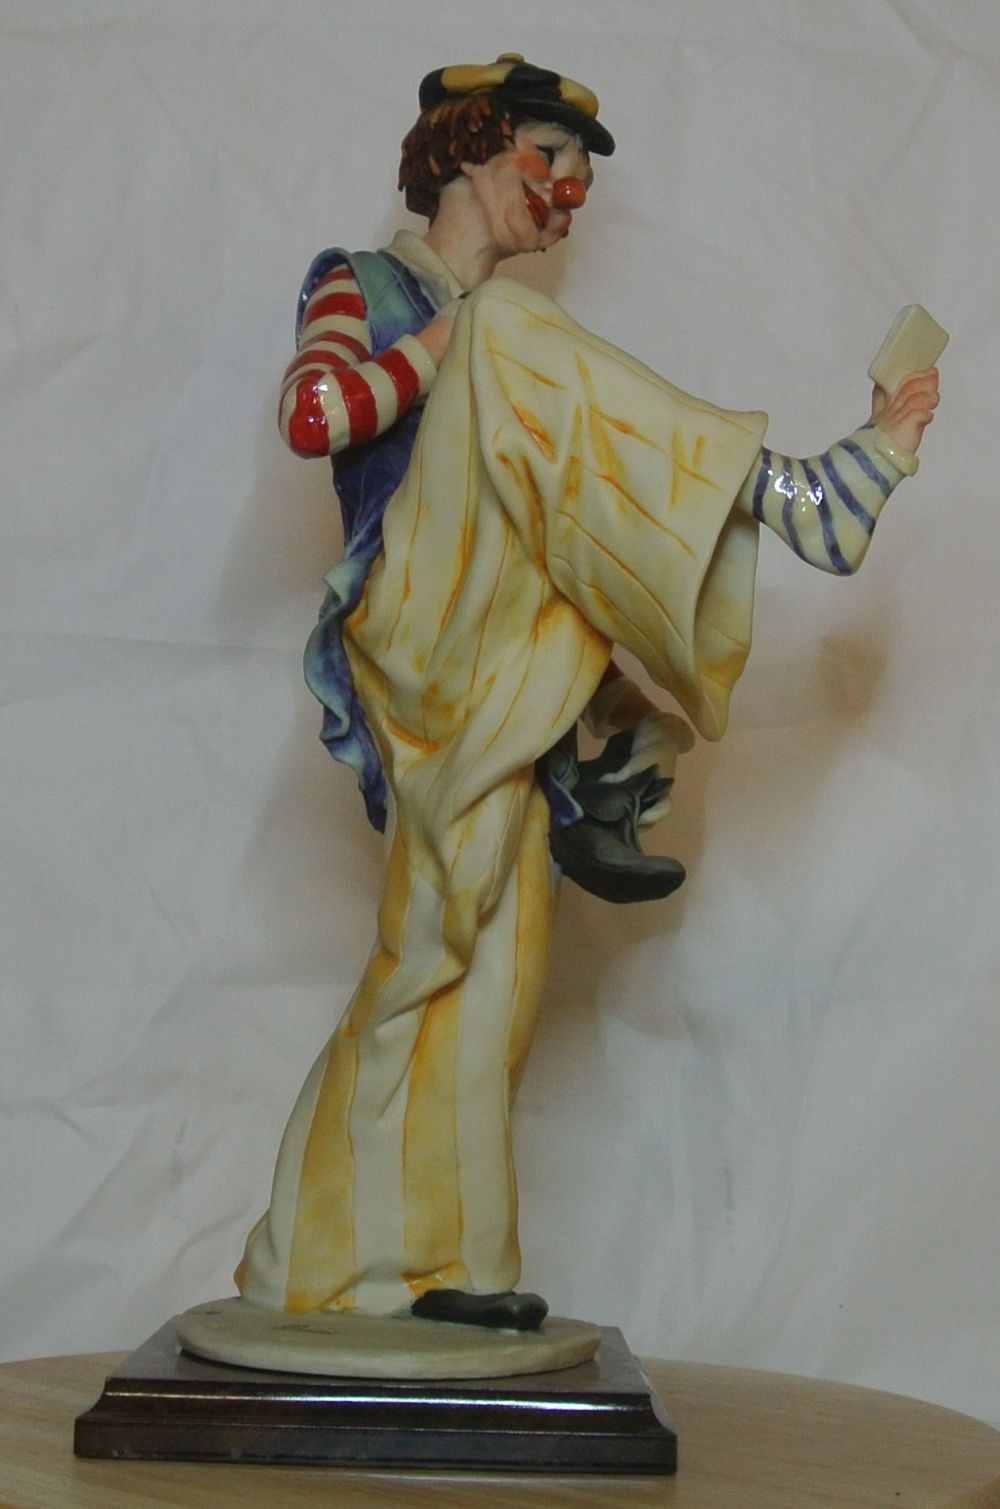 Lot 78: A Capodimonte figure of a clown reading a book held between his toes